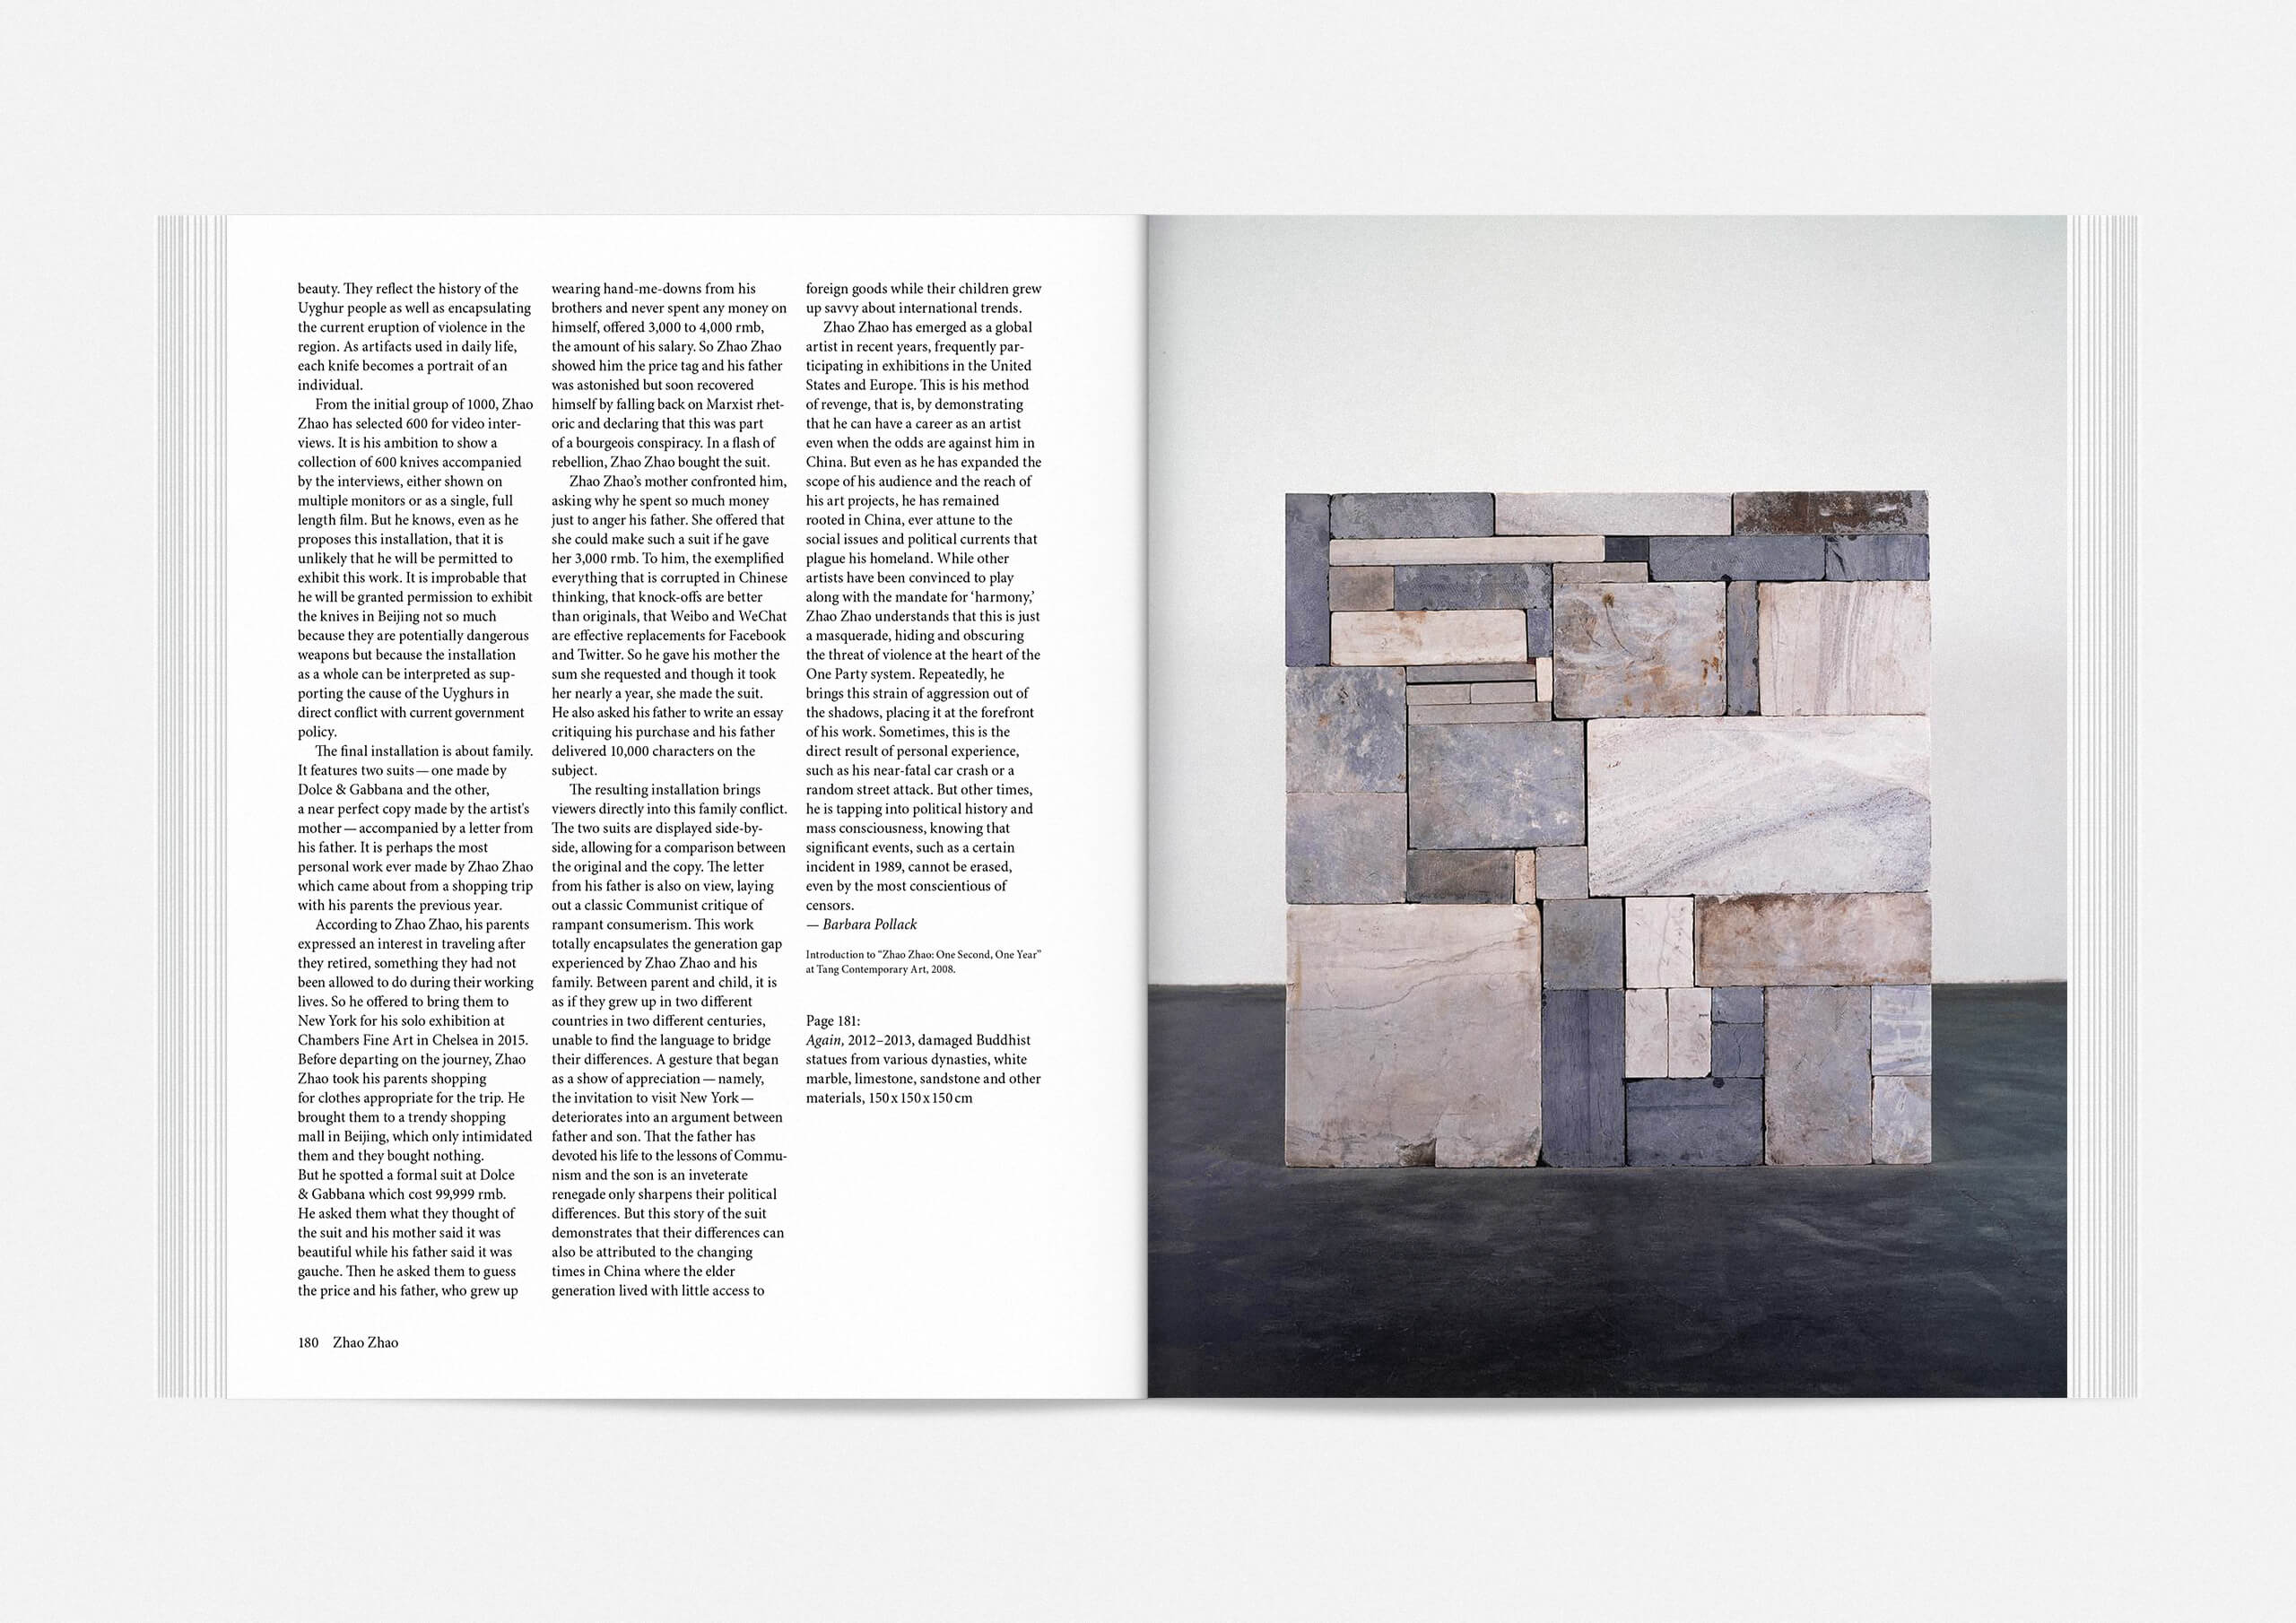 http://neuegestaltung.de/media/pages/clients/protocollum-issue-no-05/a9c7644d86-1597415146/protocollum-5-page-180181-ng.jpg